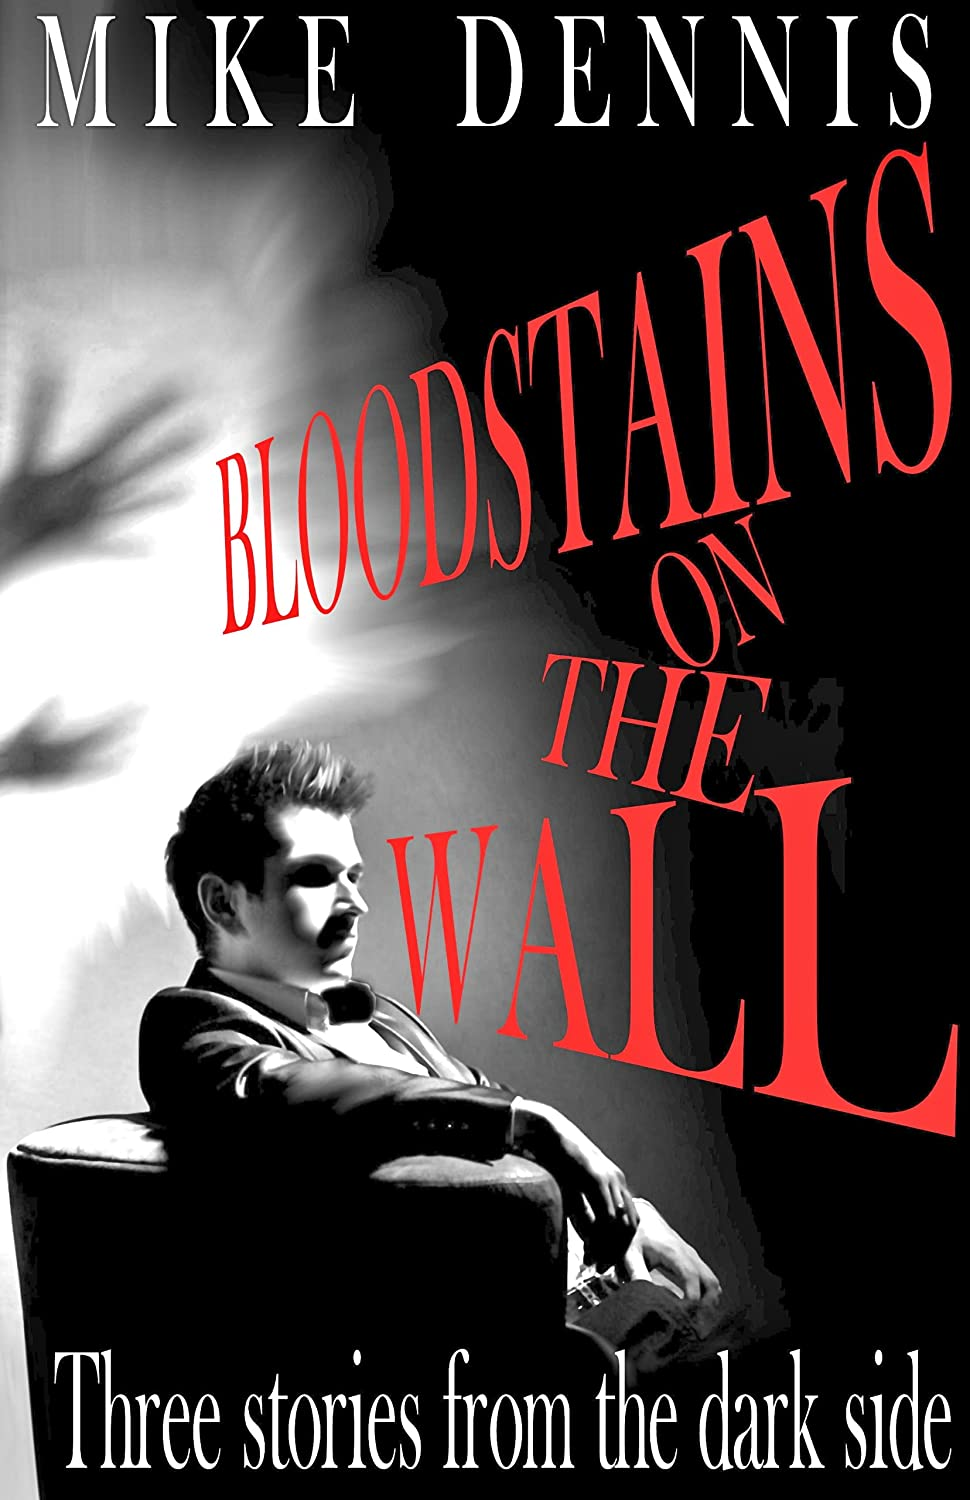 cover art for the short story collection, Bloodstains on the Wall, by Mike Dennis